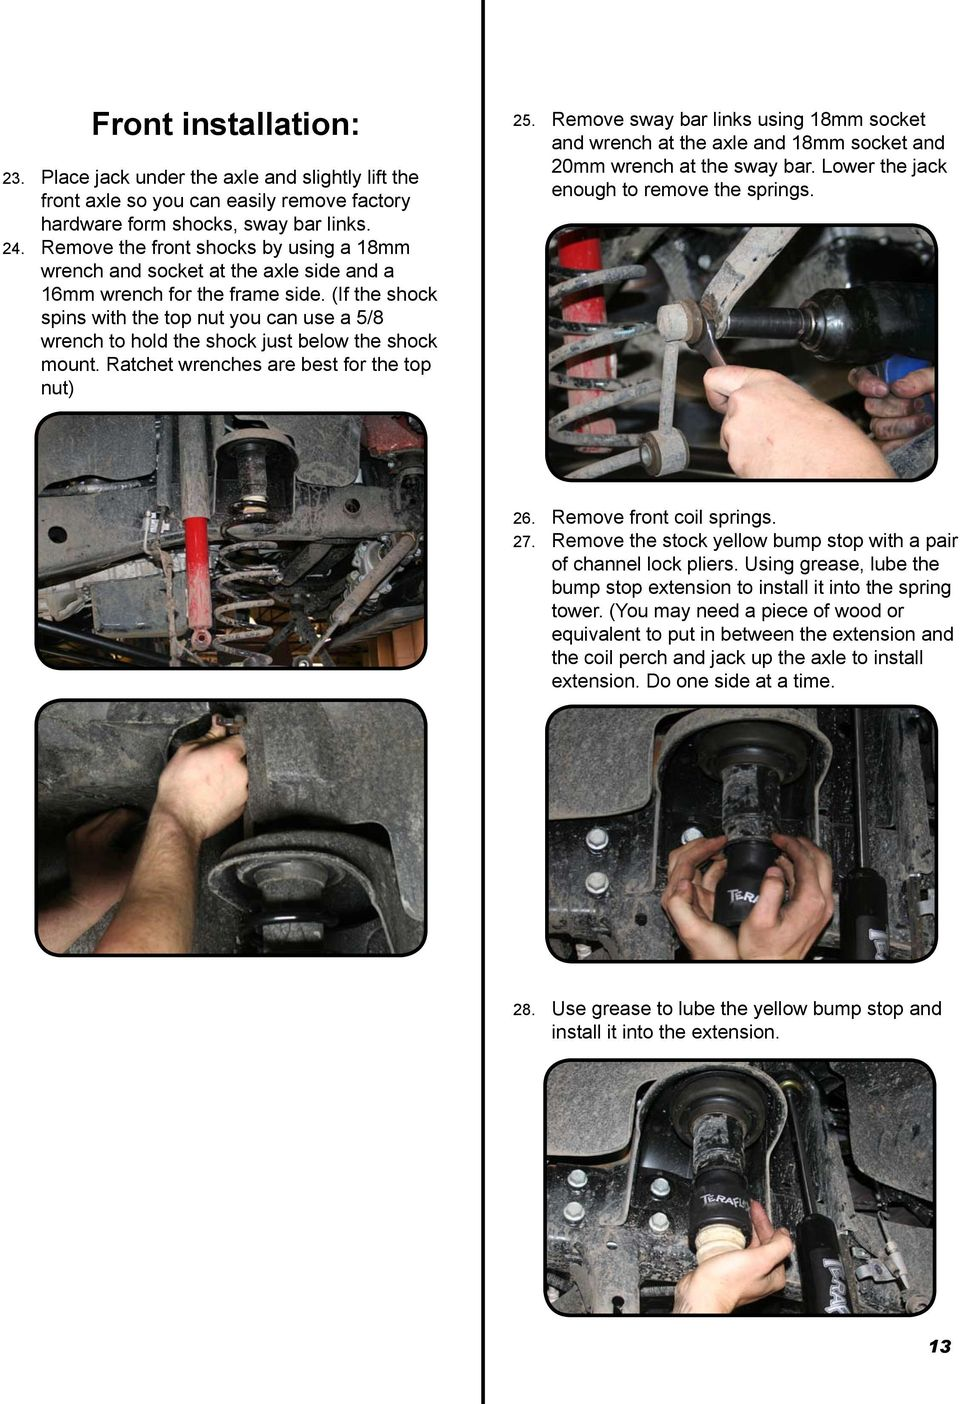 (If the shock spins with the top nut you can use a 5/8 wrench to hold the shock just below the shock mount. Ratchet wrenches are best for the top nut) 25.